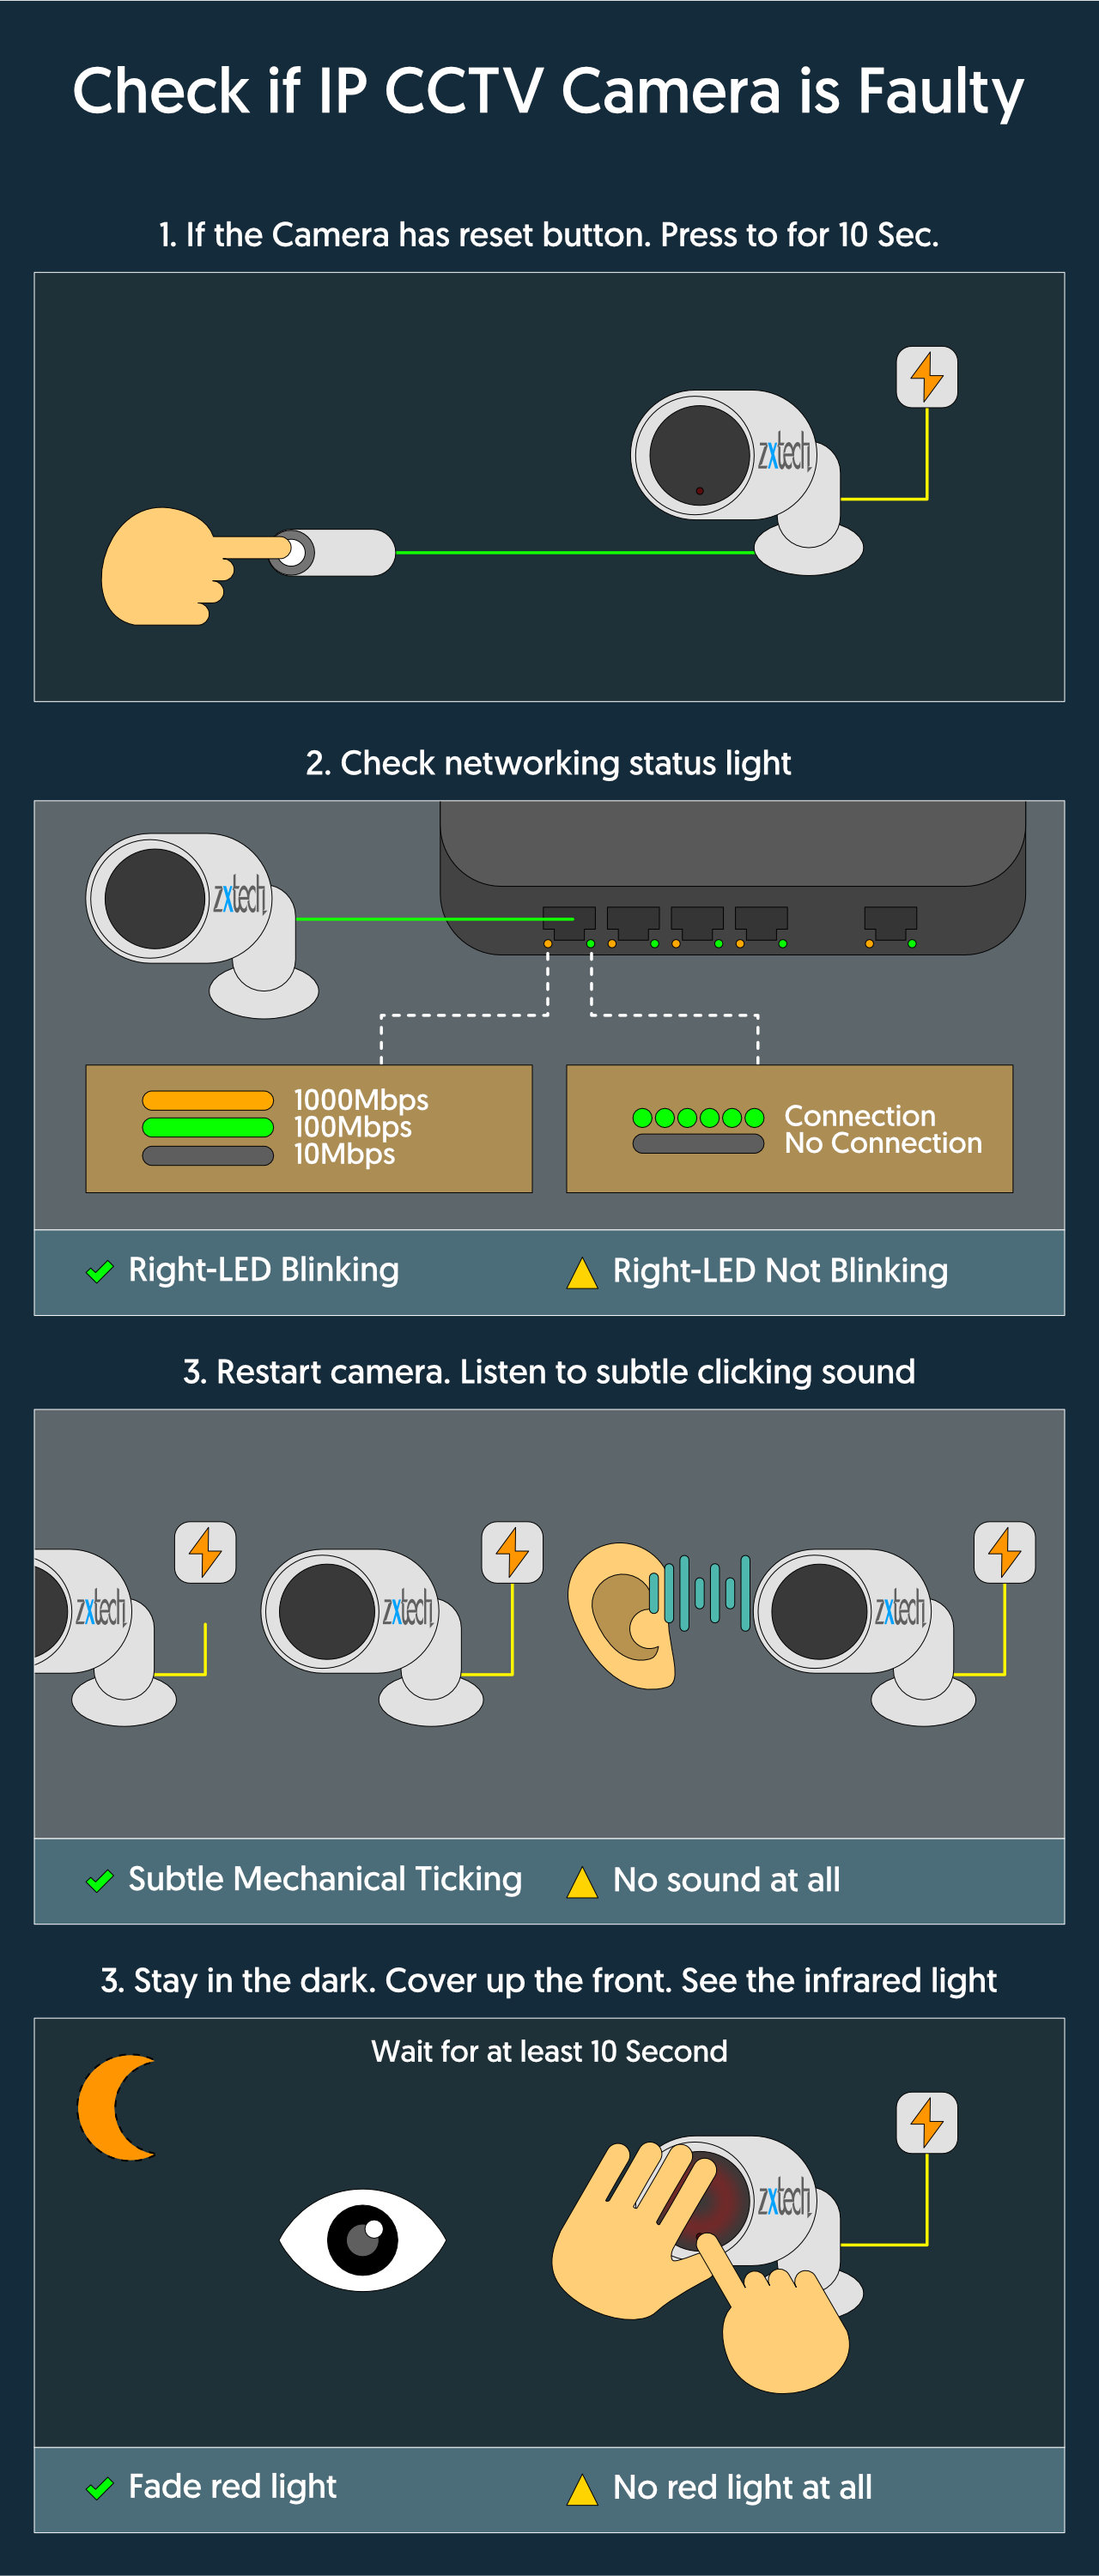 How to Check if Zxtech IP CCTV Camera is Faulty